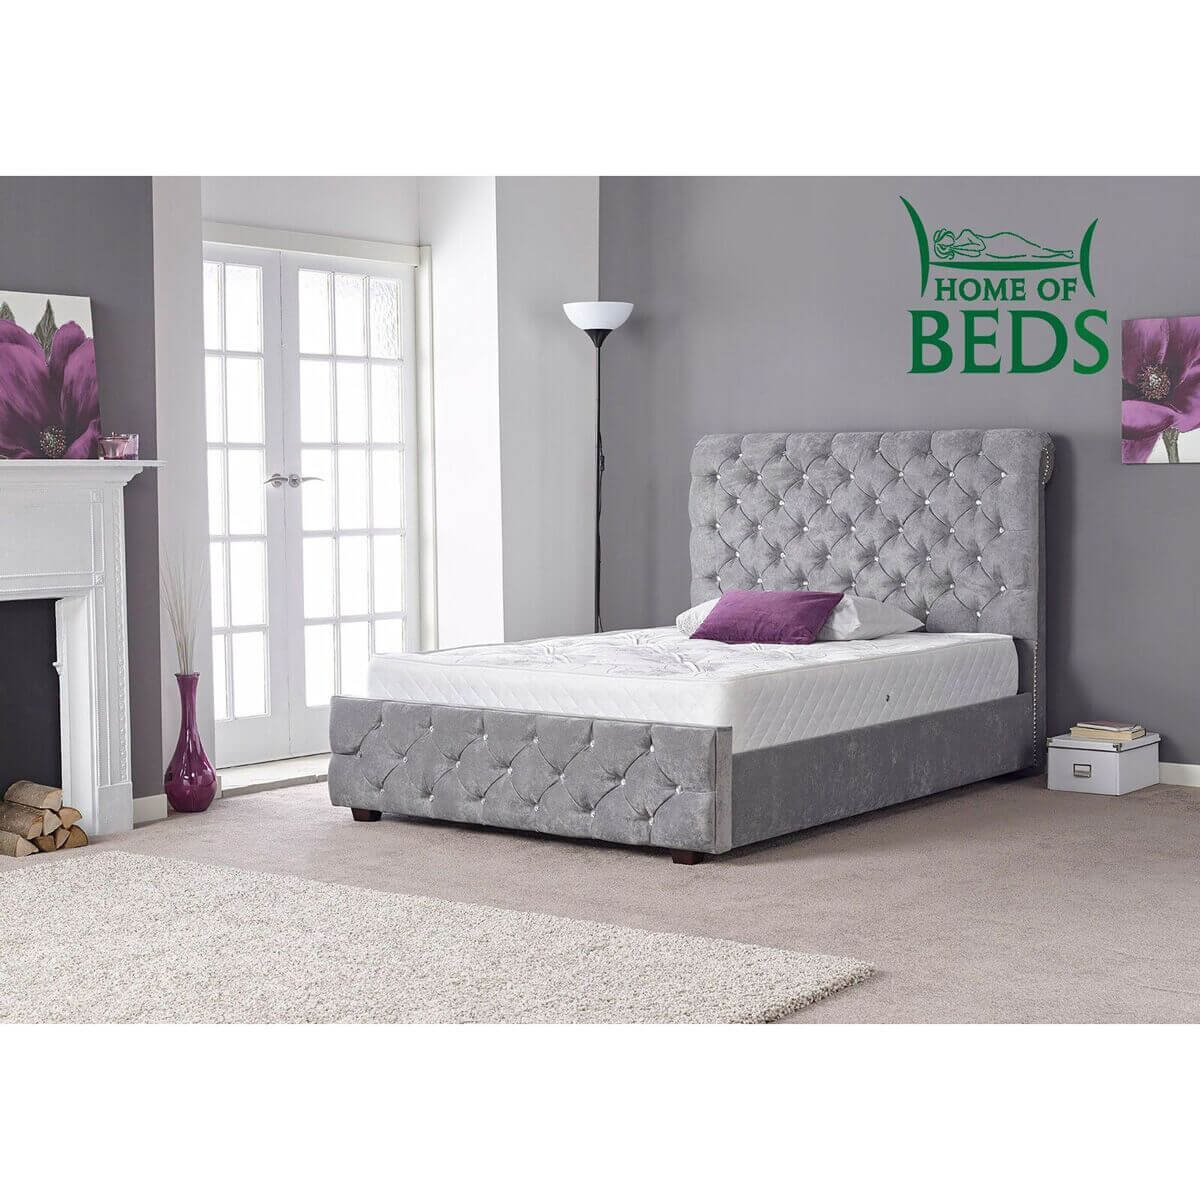 Hannah Silver Crushed Velvet Bed Fabric Beds Fads